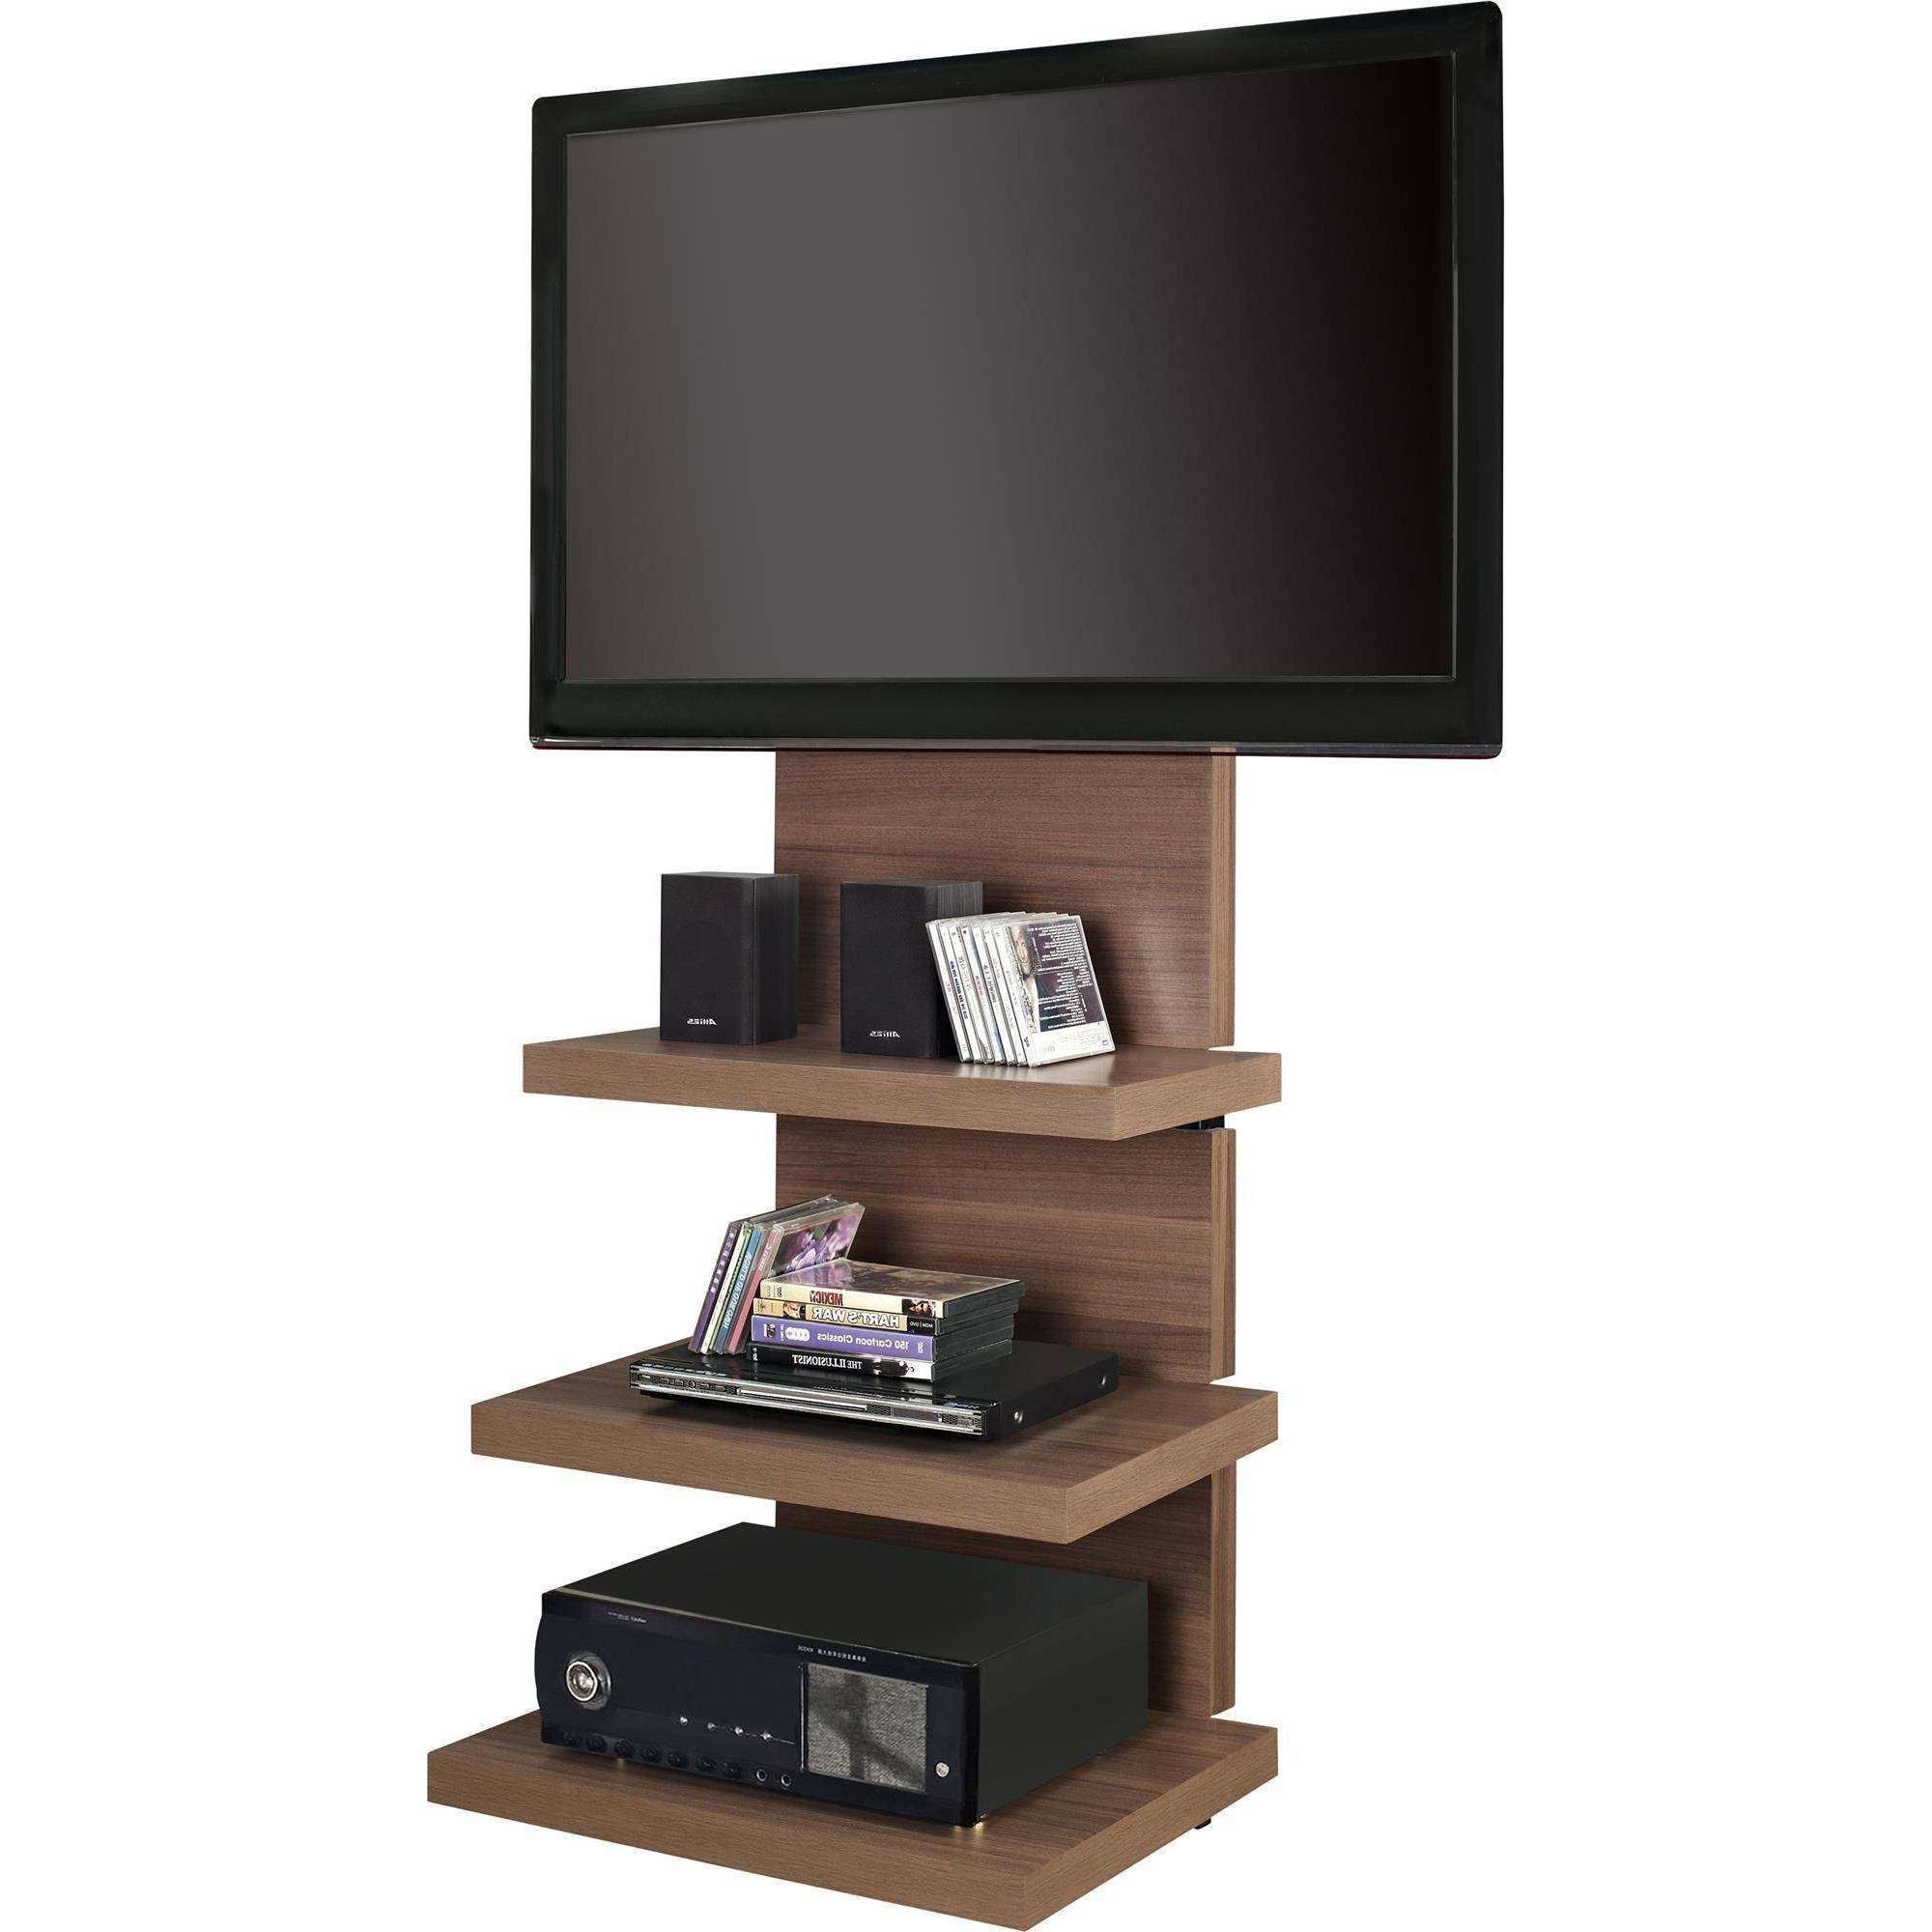 Ameriwood Home Elevation Altramount Tv Stand For Tvs Up To 60 Pertaining To Modern Tv Stands For 60 Inch Tvs (View 6 of 15)